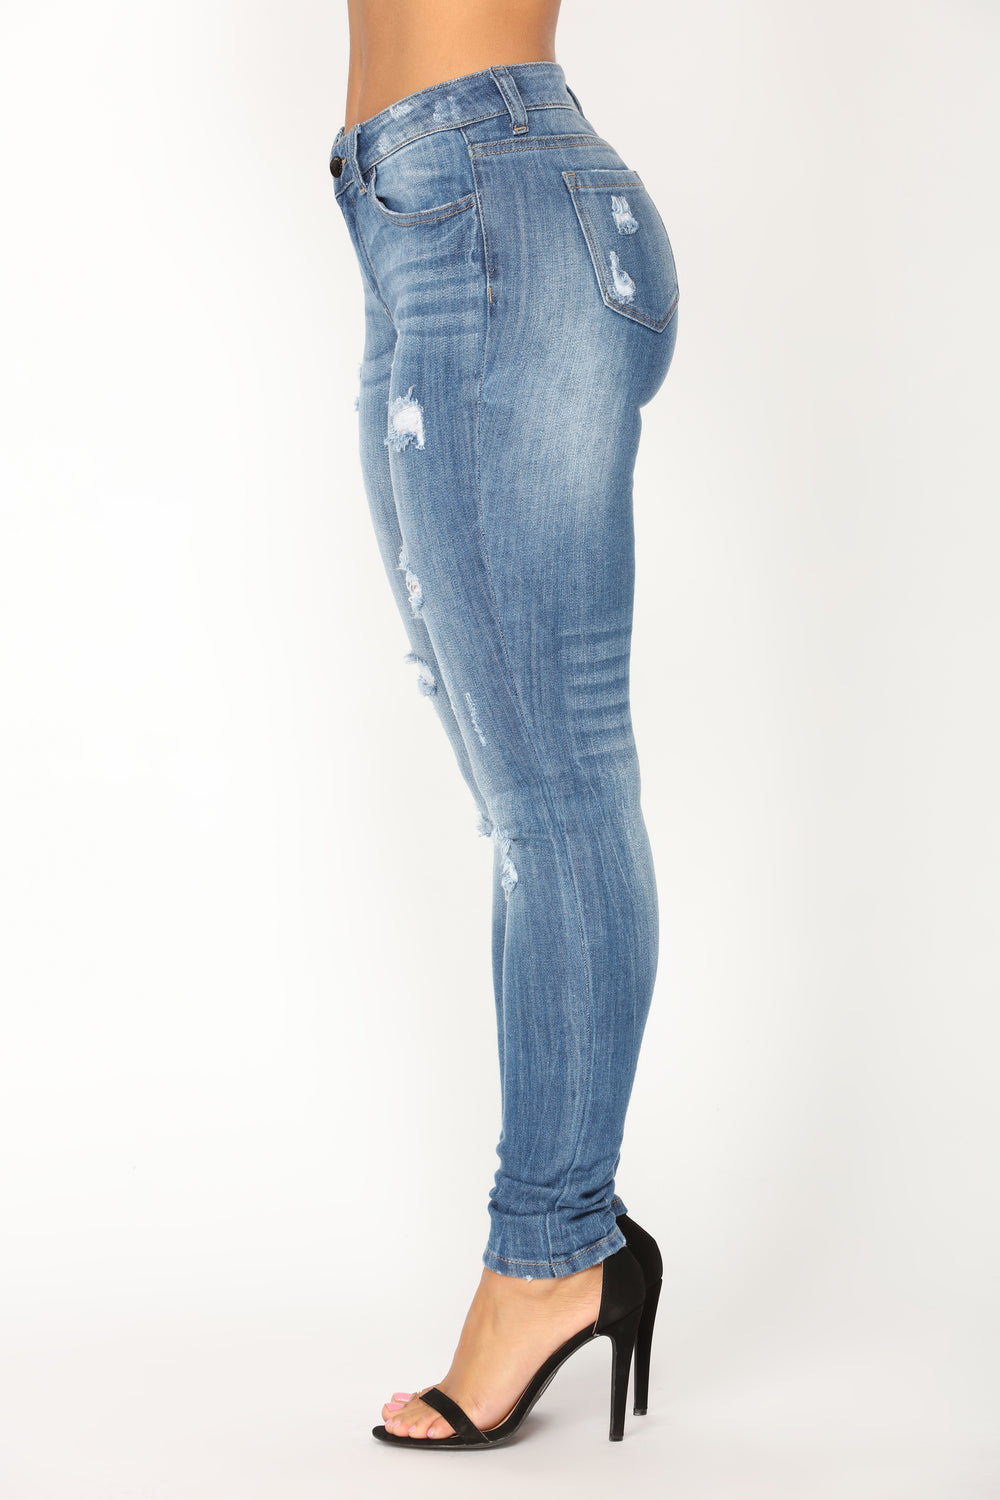 Pon De Replay Skinny Jeans - Medium Blue Wash